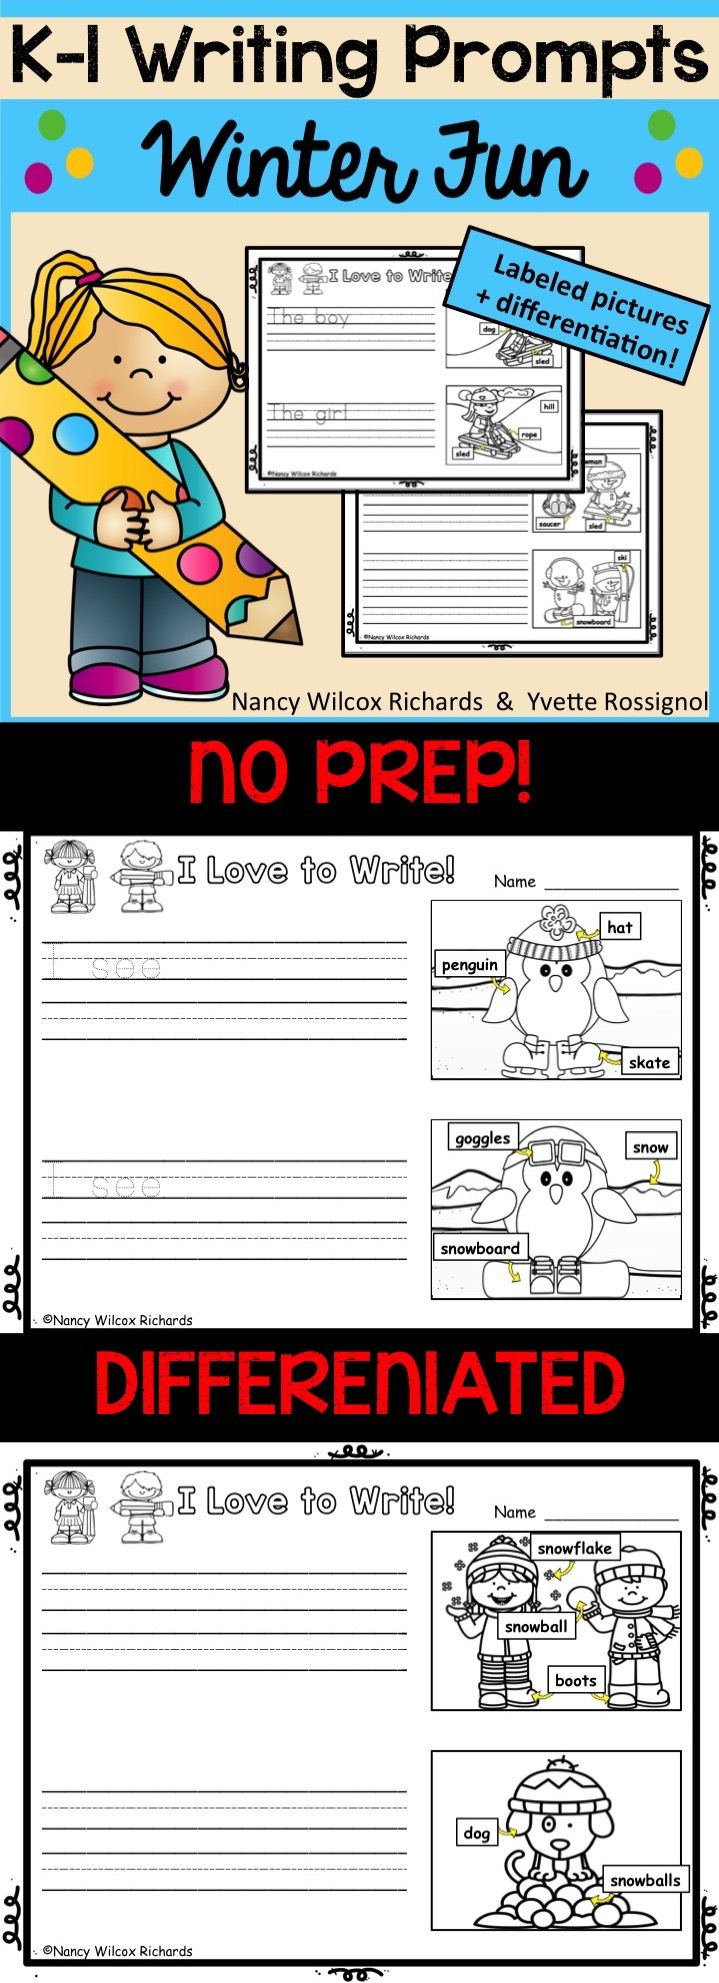 Engaging winter writing prompts for K-1! Differentiated AND labeled pictures!